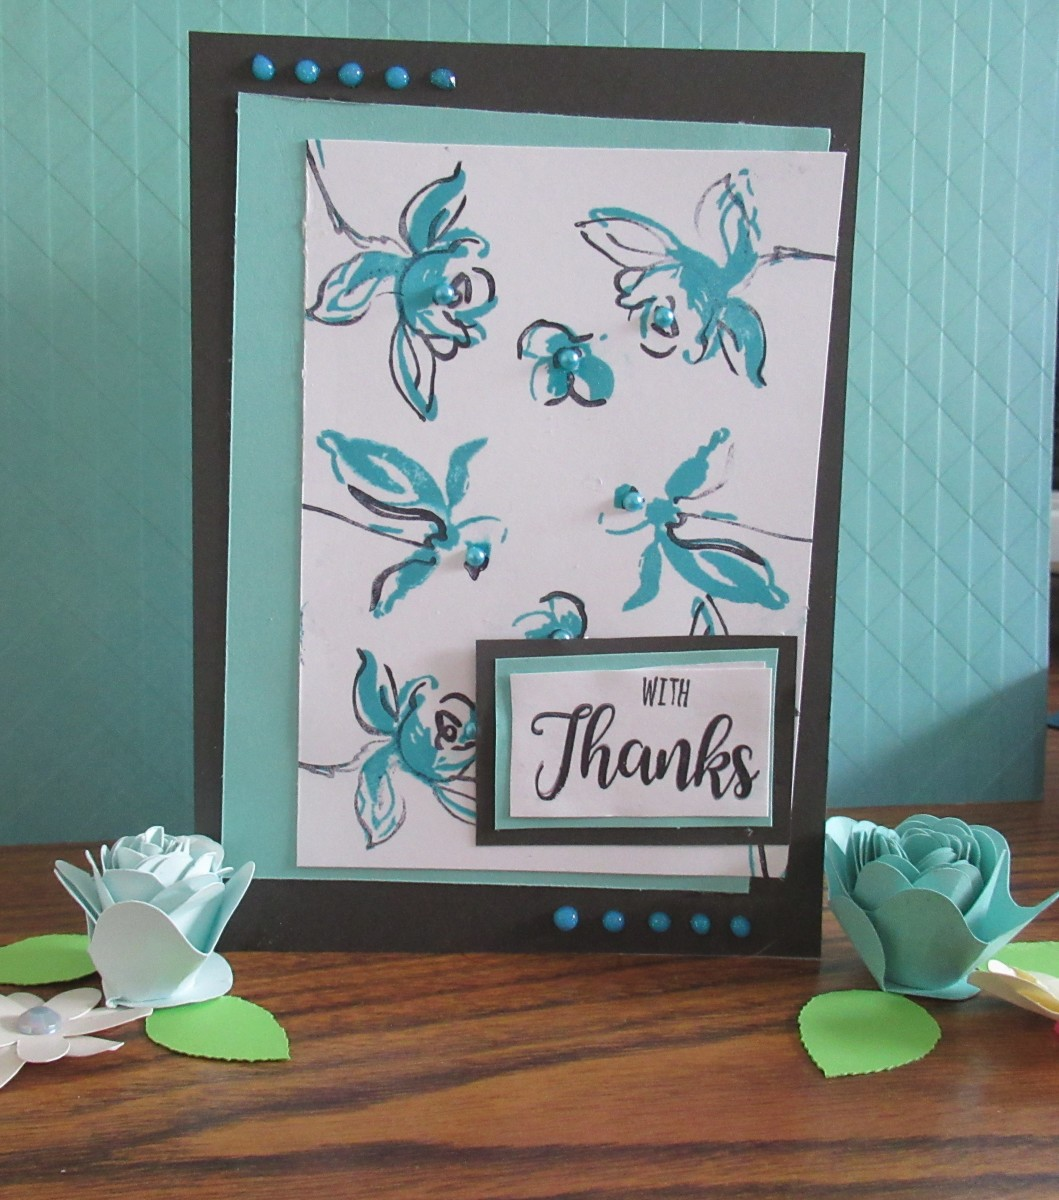 Add more dimension to your cards by adding layers of cardstock to your project